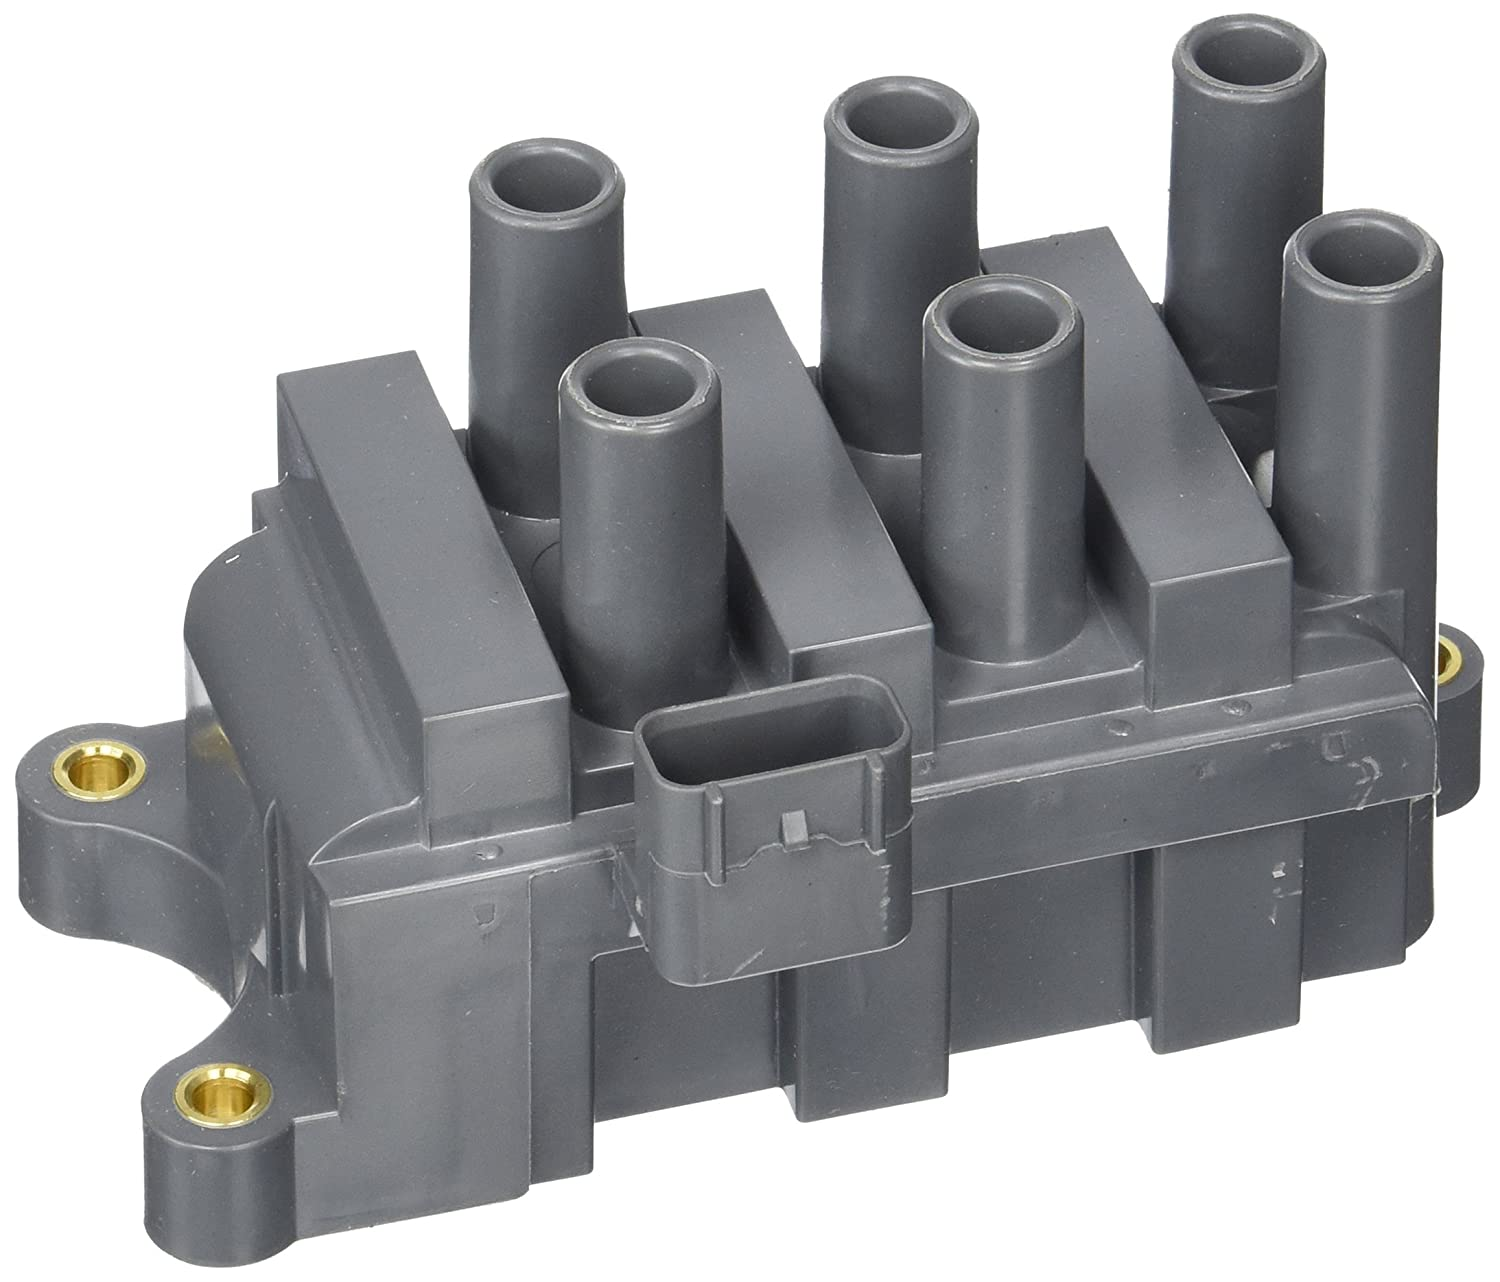 Standard Motor Products Fd 498t Ignition Coil Automotive Buzz Box